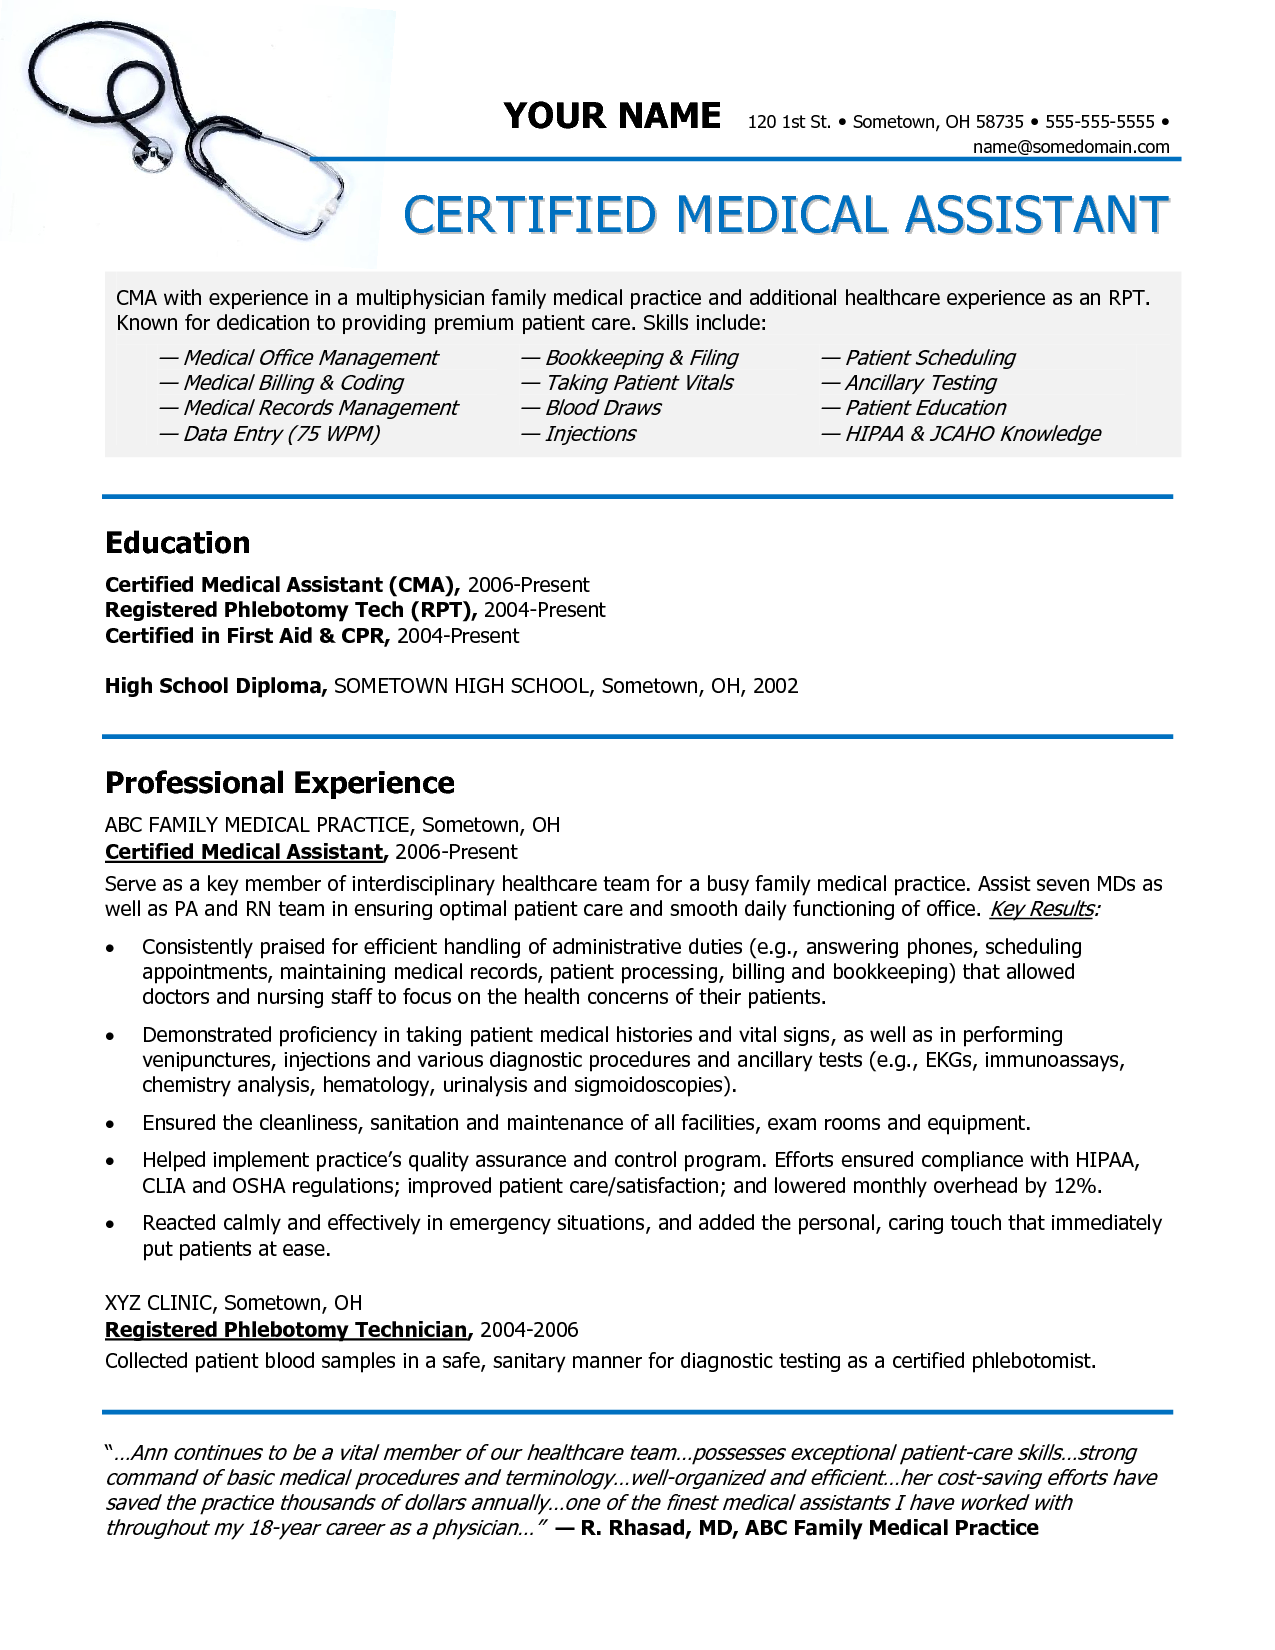 Medical Assistant Resume Entry Level Examples 18 Medical Assistant . Throughout Medical Assistant Sample Resume